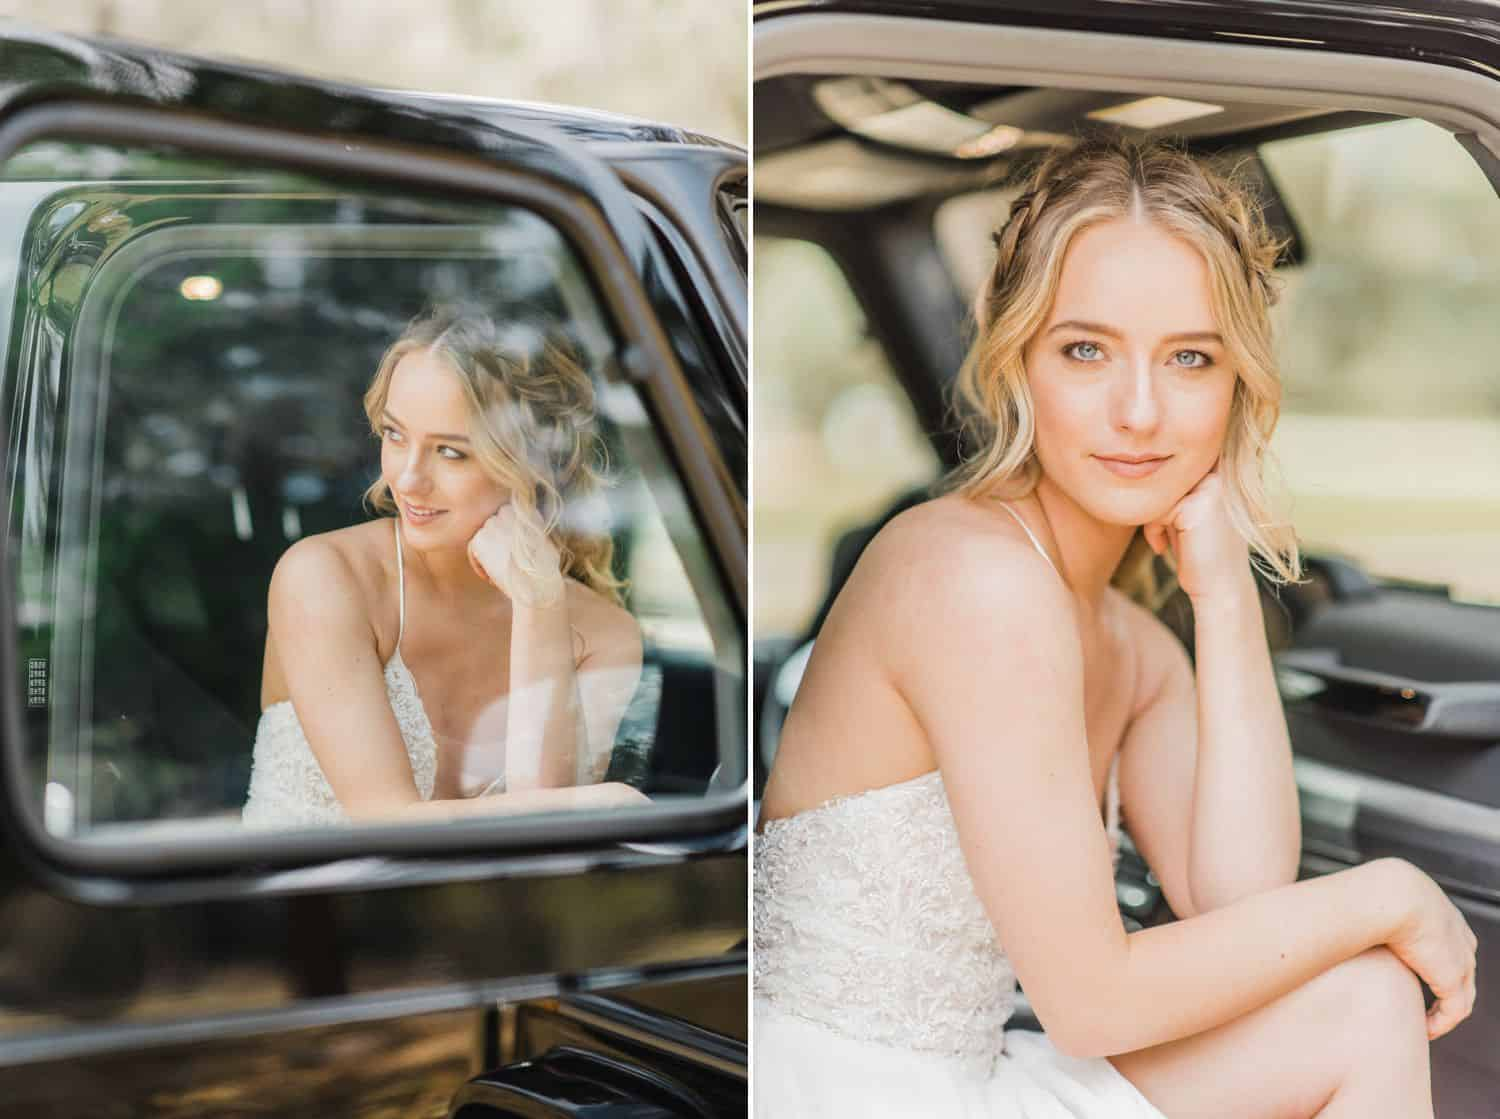 Blonde bride sitting in a Jeep: Get Photography Clients with Styled Shoots